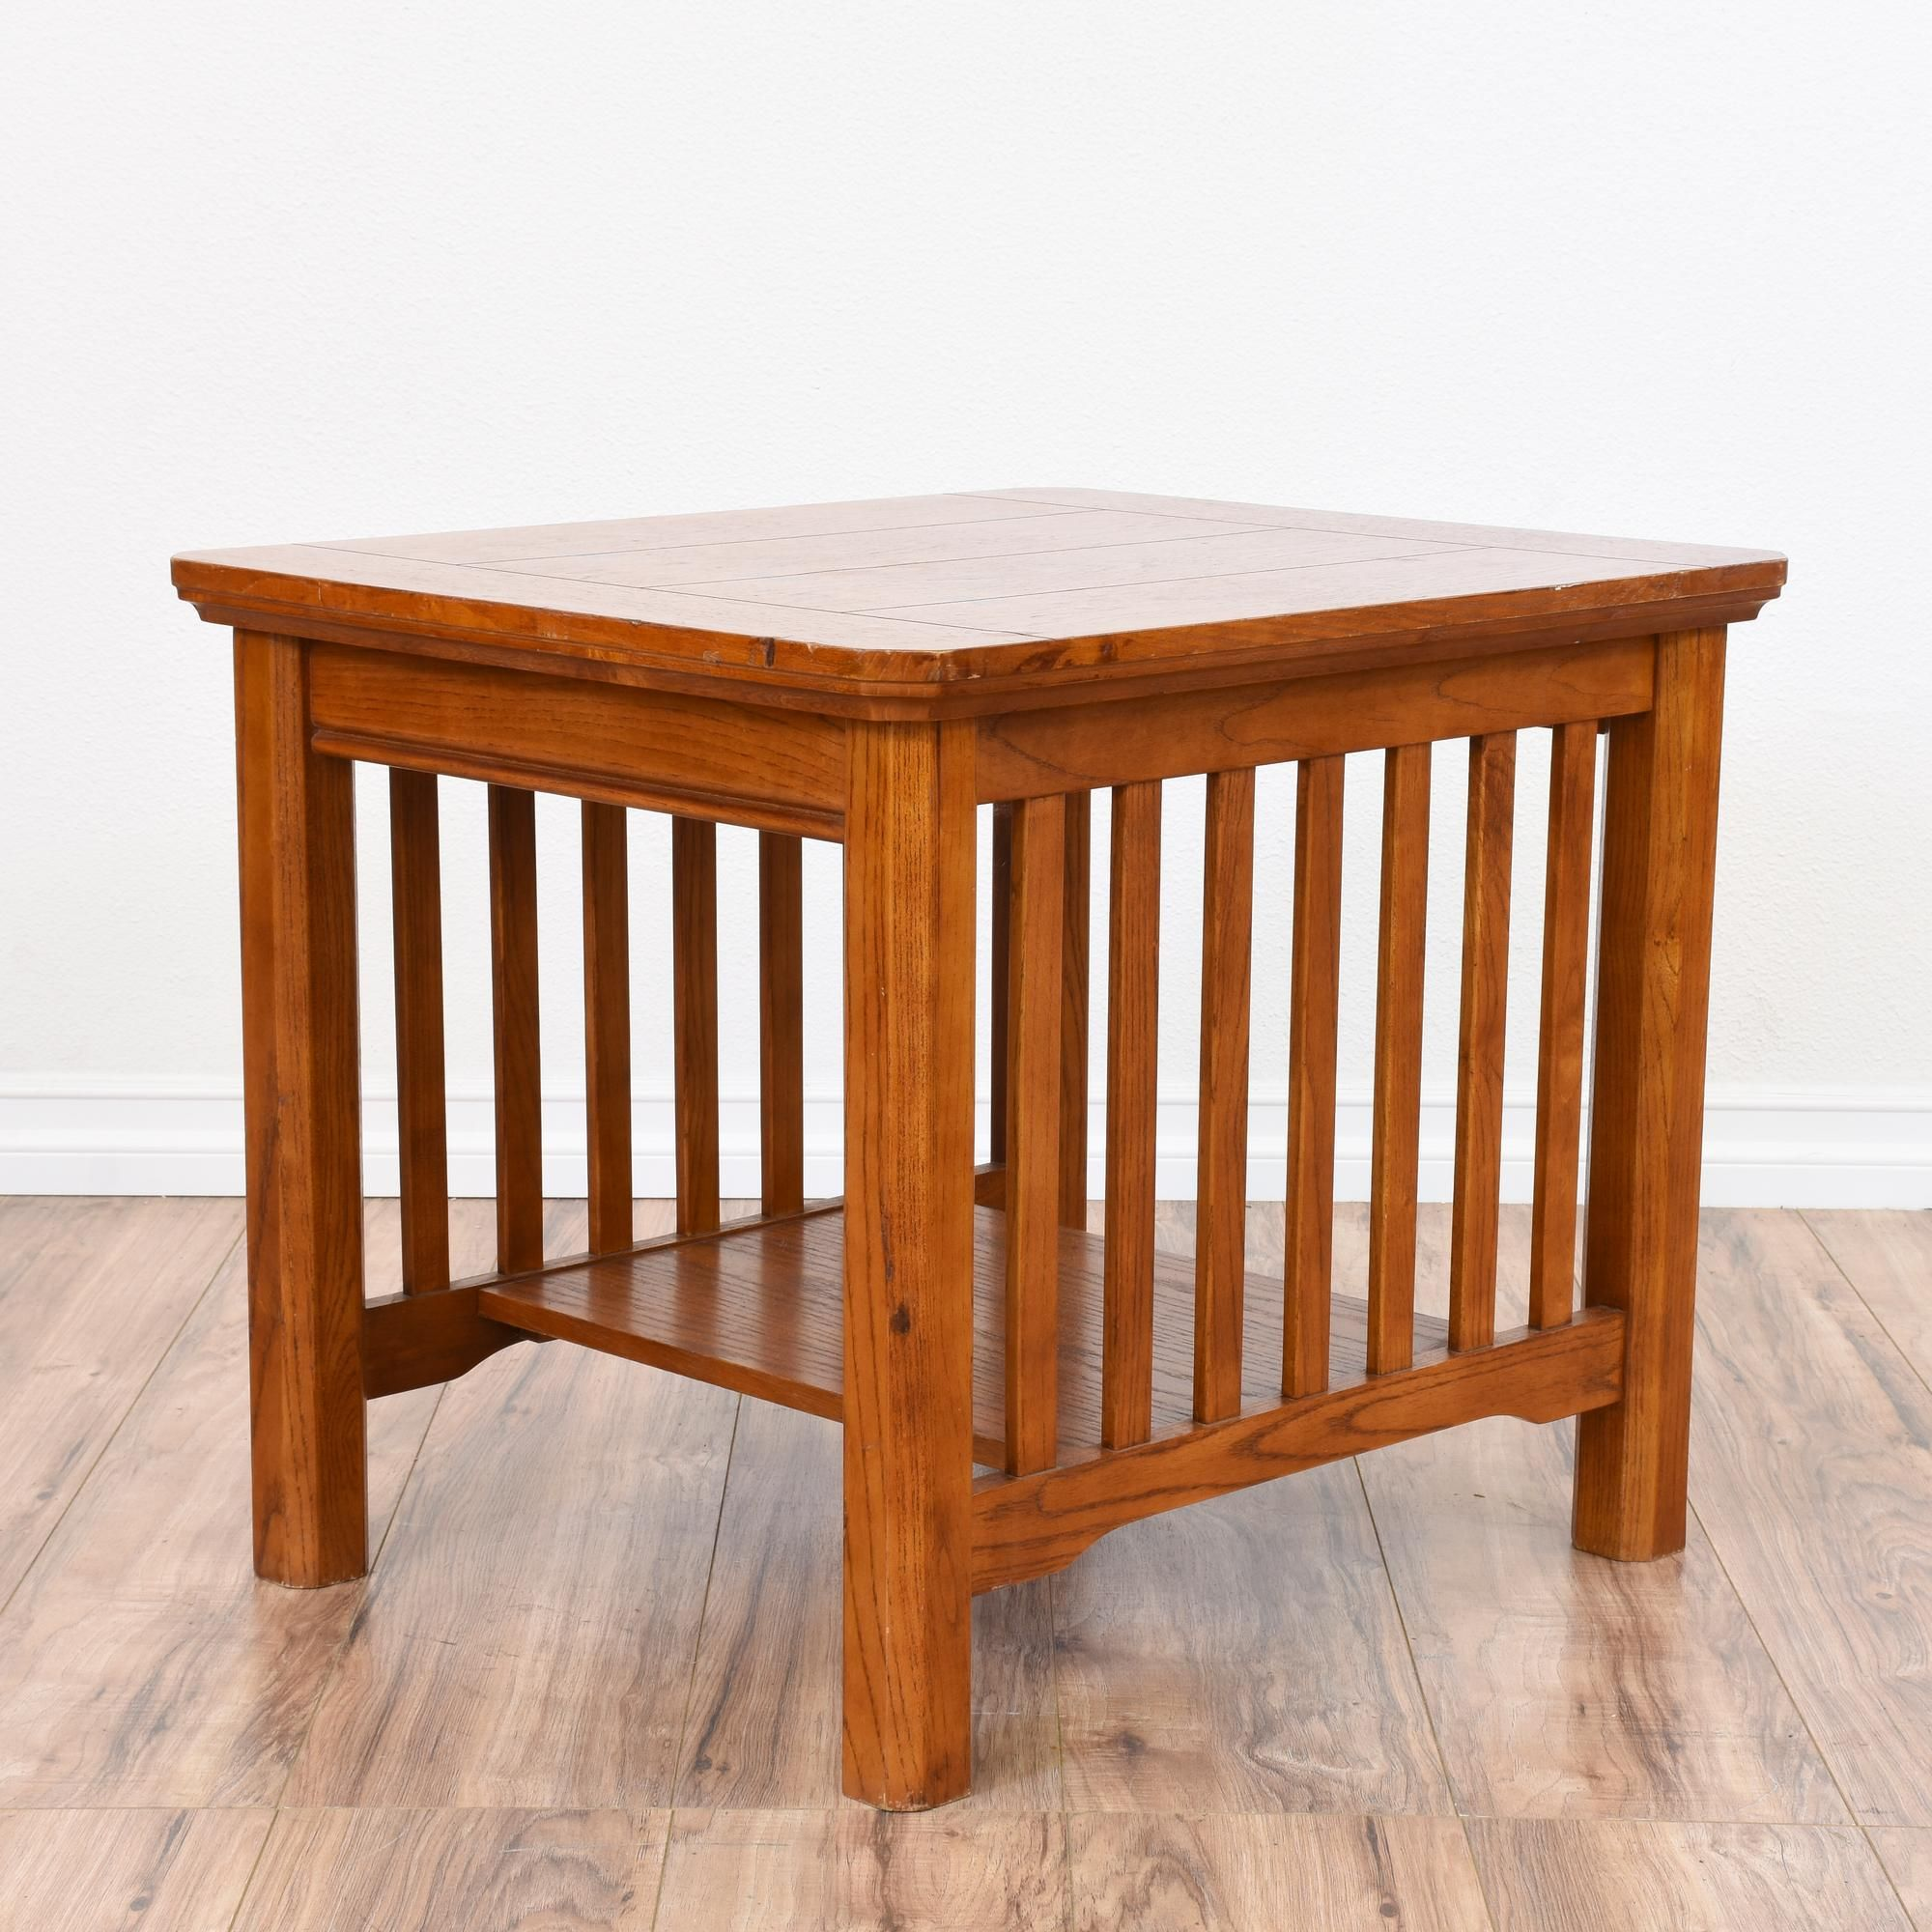 this mission style end table is featured in a solid wood with a